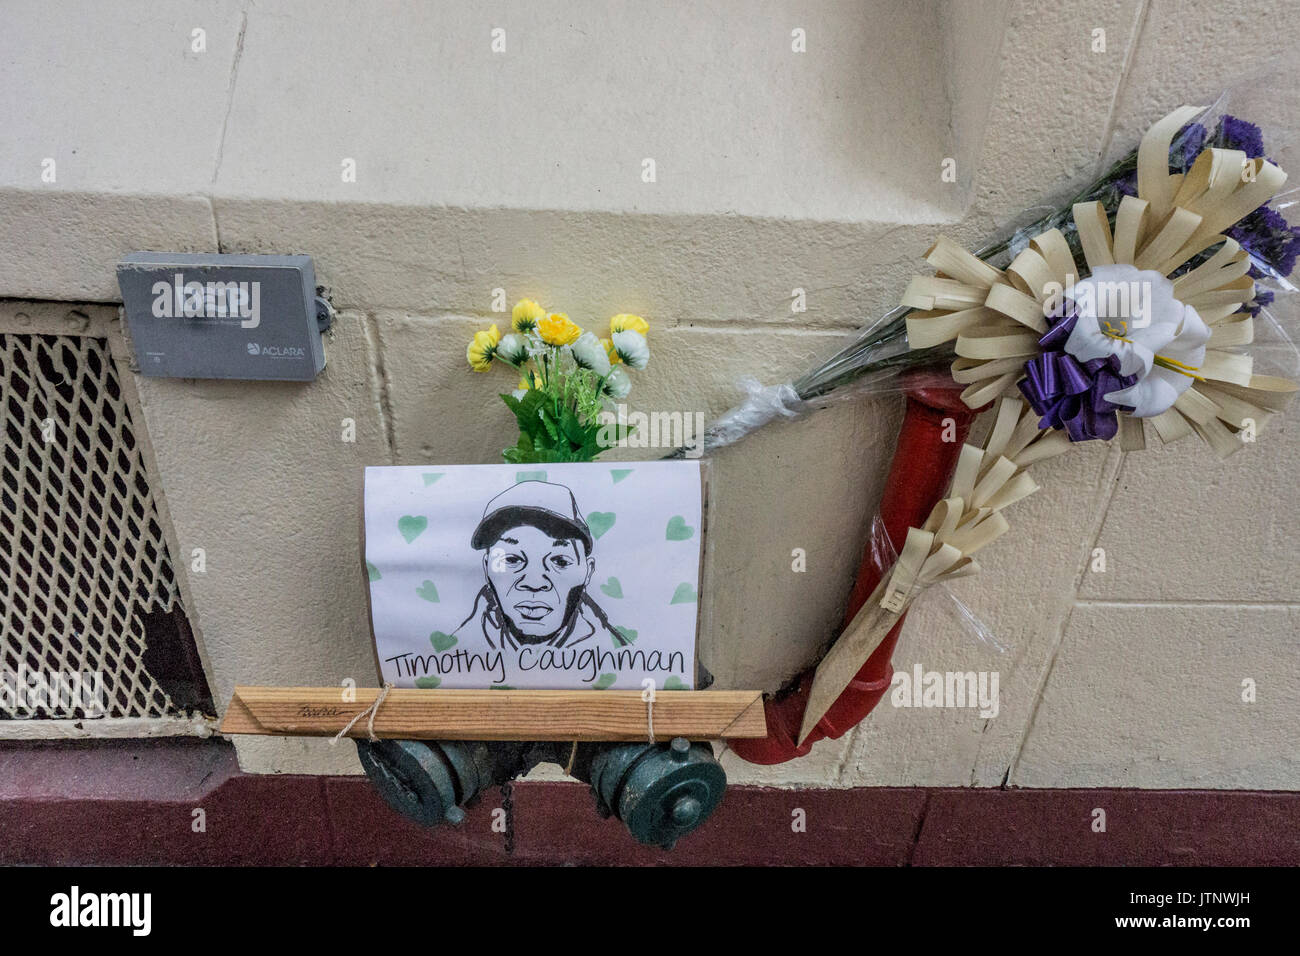 memorial tribute to black victim of hate crime include superb ink portrait of his bleak face fastened to standpipe on 36th Street NYC Garment district - Stock Image